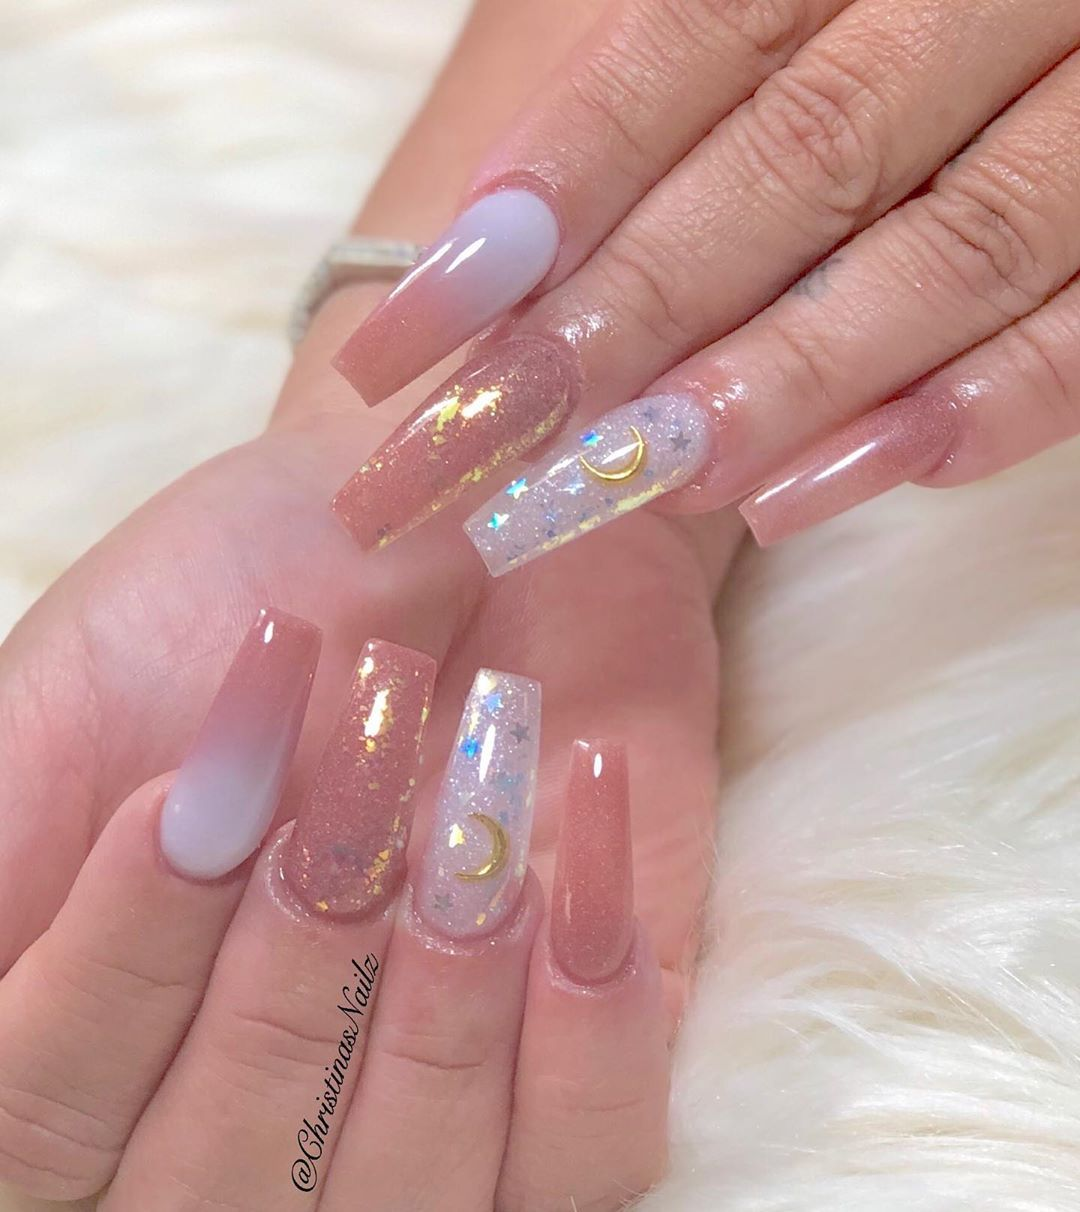 Christinas Nailz On Instagram Omgeee Y All Love These Moon And Stars So Cute 559nails 559fresnonails Fresnonailsal Nails Swag Nails Moon Nails